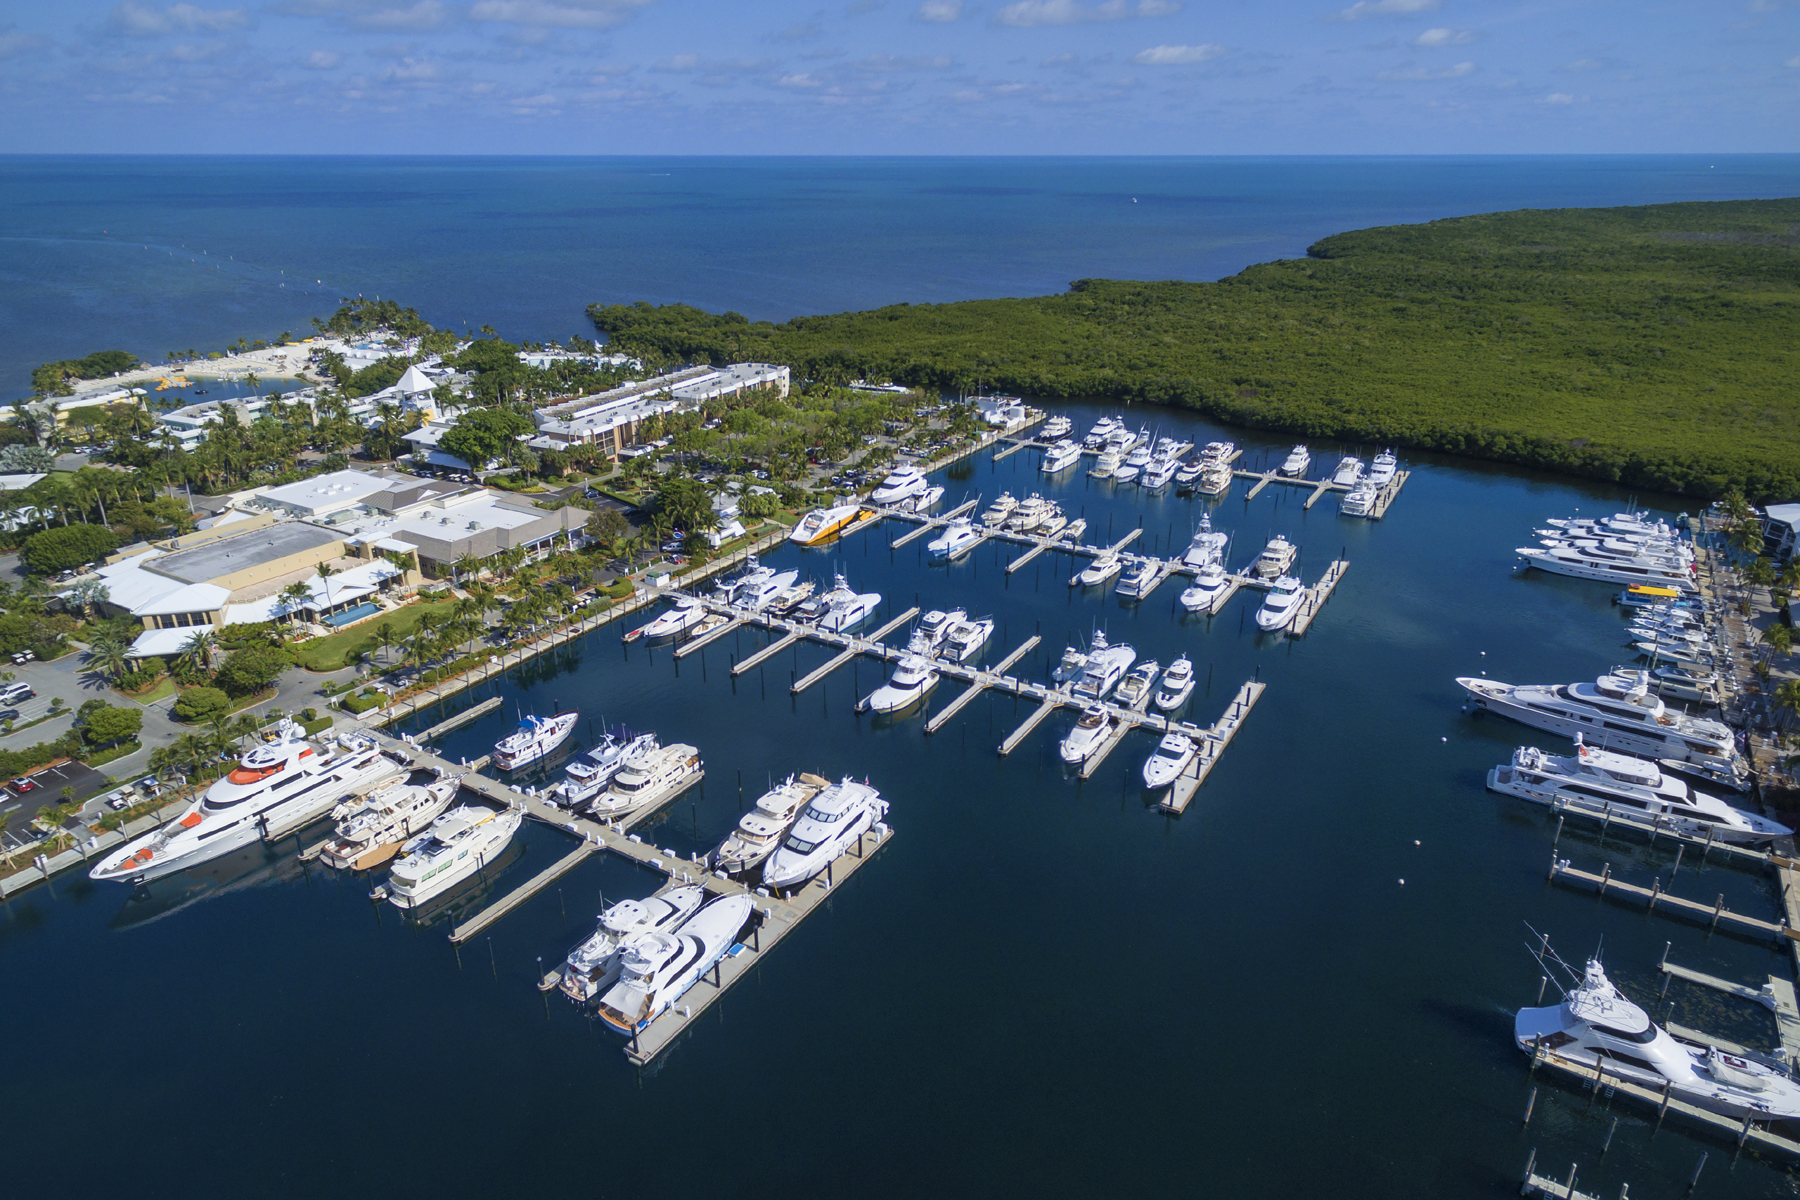 其他住宅 為 出售 在 Ocean Reef Marina Offers Full Yacht Services 201 Ocean Reef Drive, Dock FS-25 Key Largo, 佛羅里達州 33037 美國